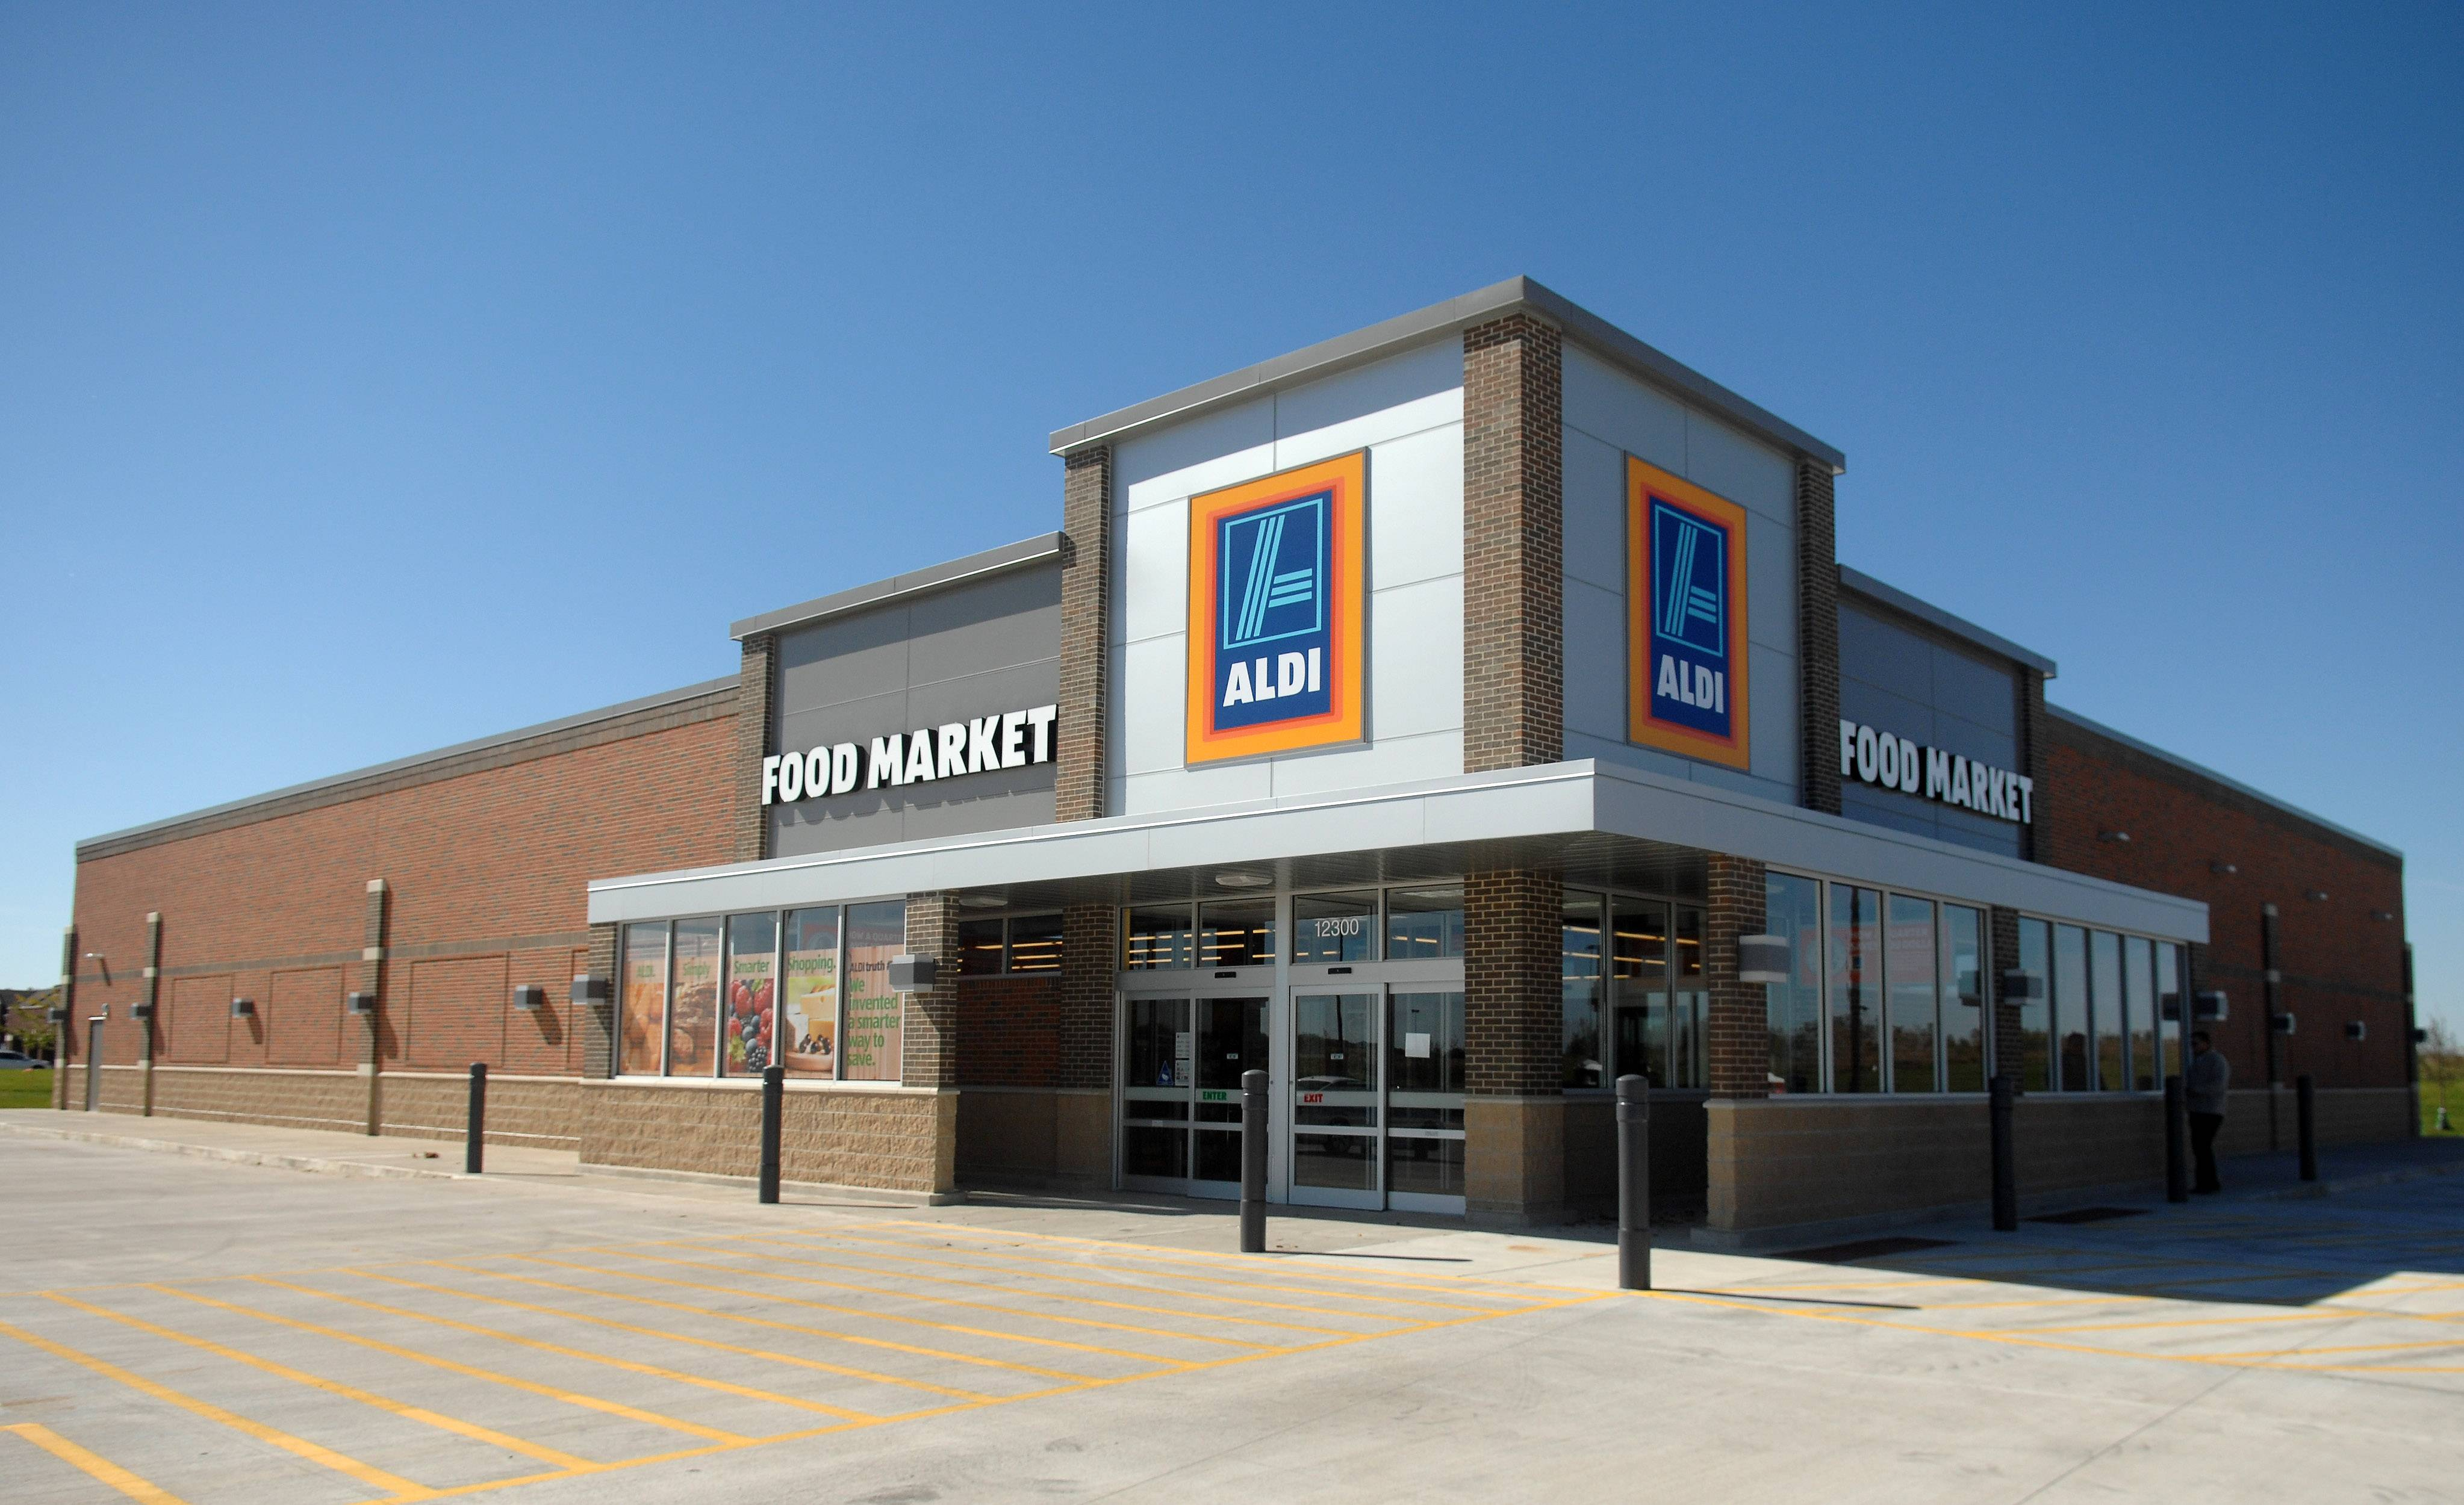 Aldi spends big on upscale look, but will keep downscale prices